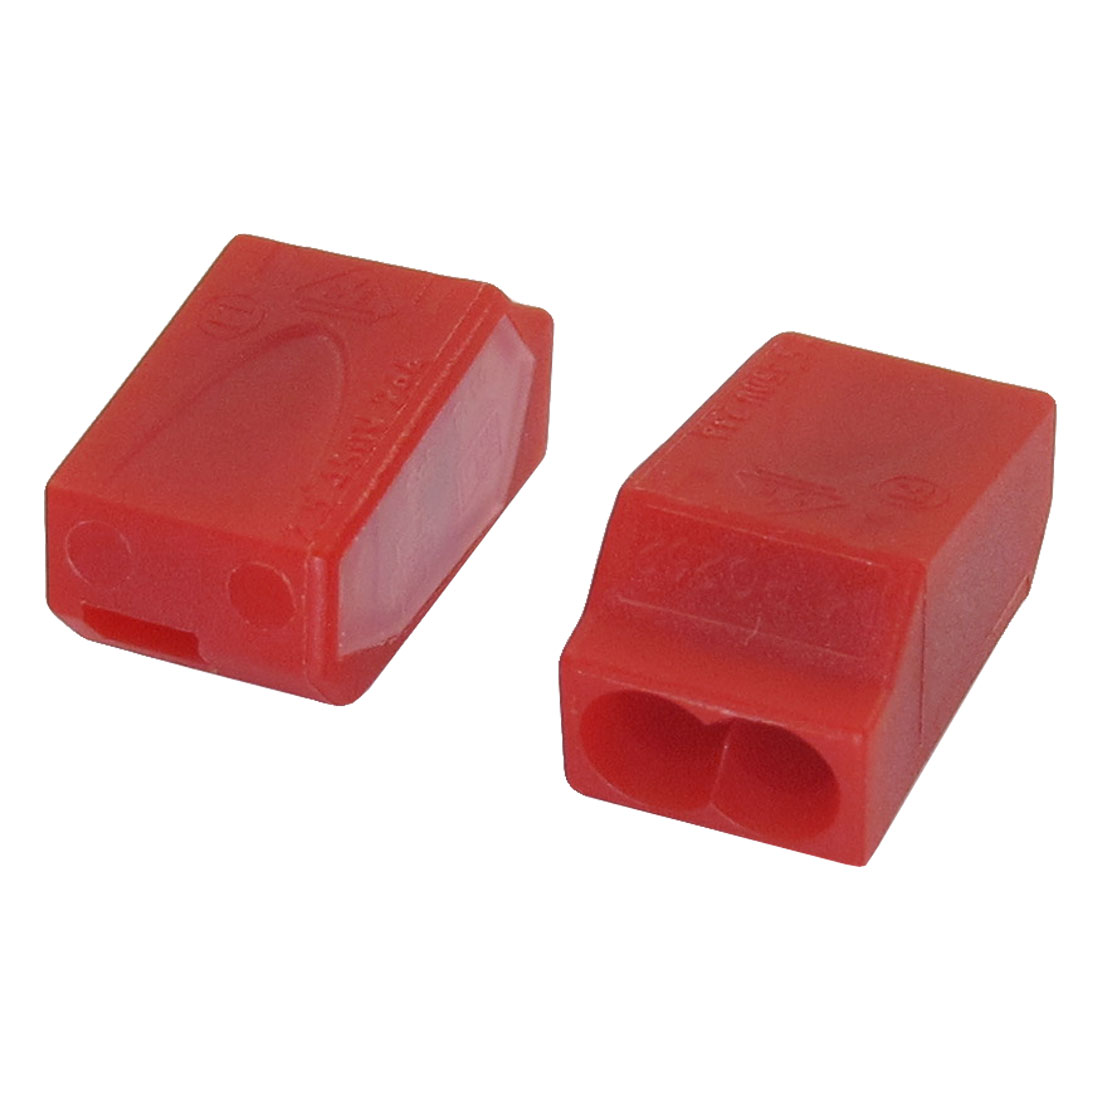 Red Thermoplastic AC 24A 450V 2 Contacts 12-22AWG PC252 Connector 2 Pieces